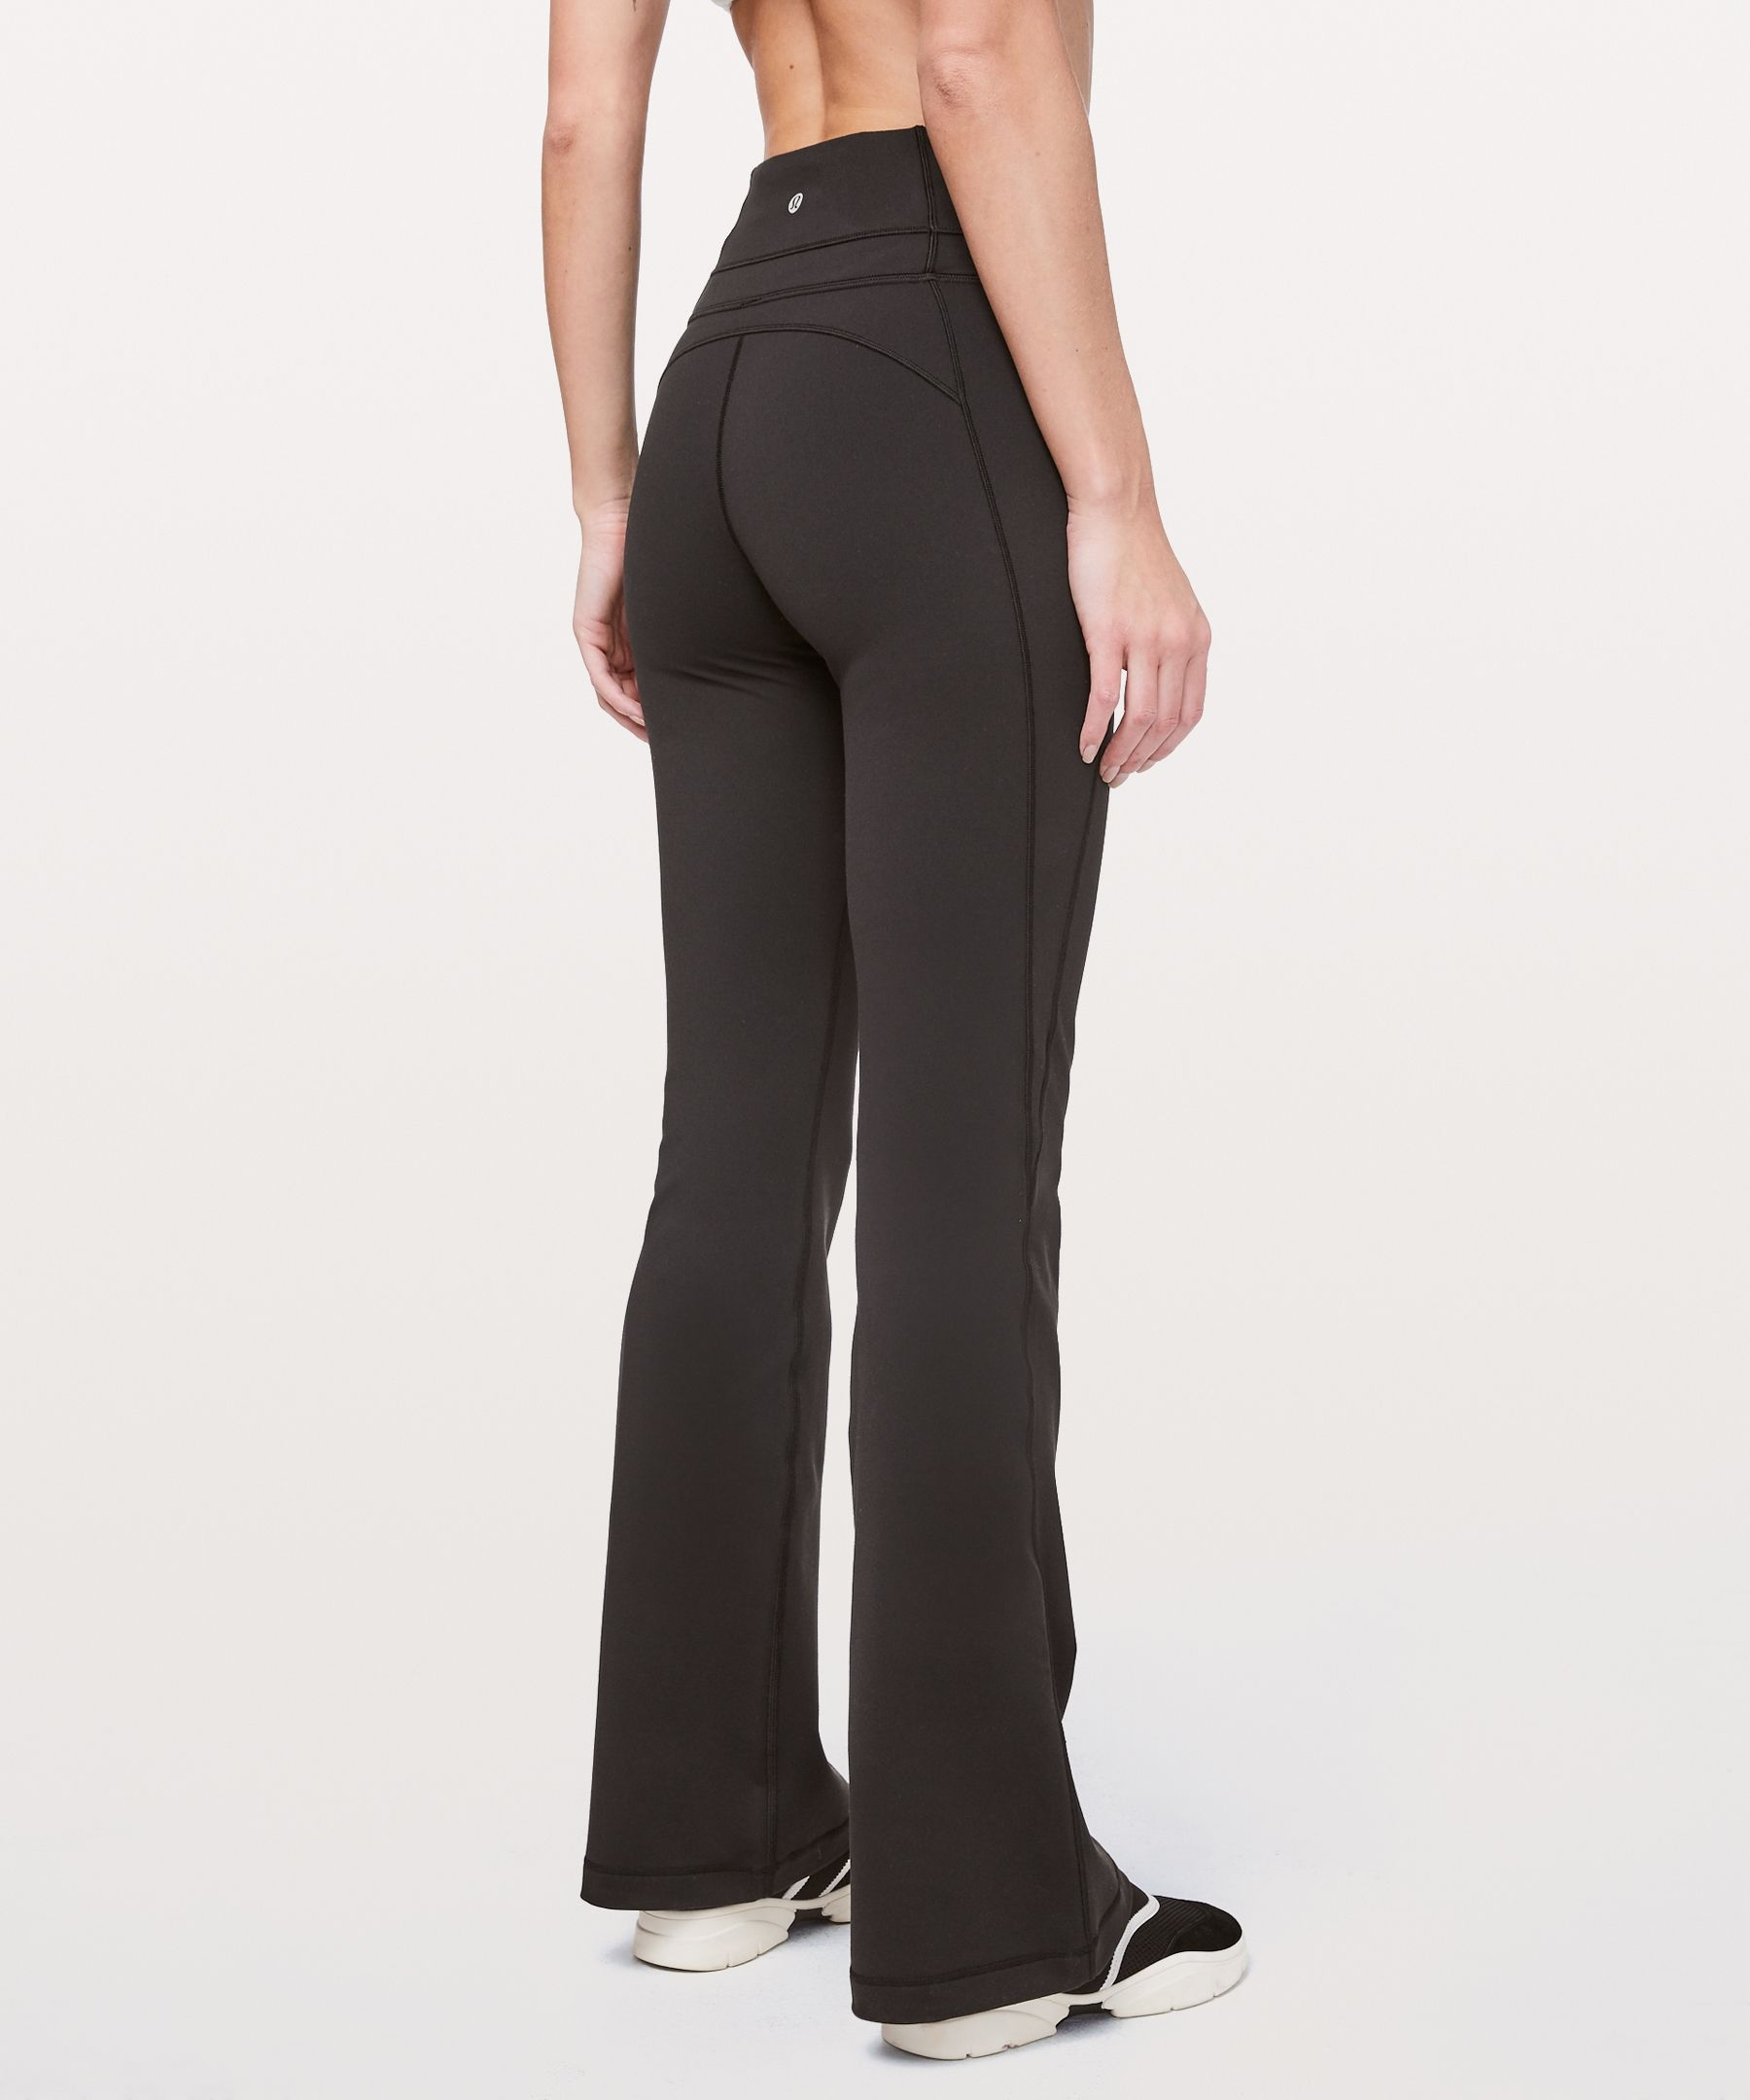 low cost big selection high quality guarantee lululemon Women's Groove Pant Flare Online Only 32